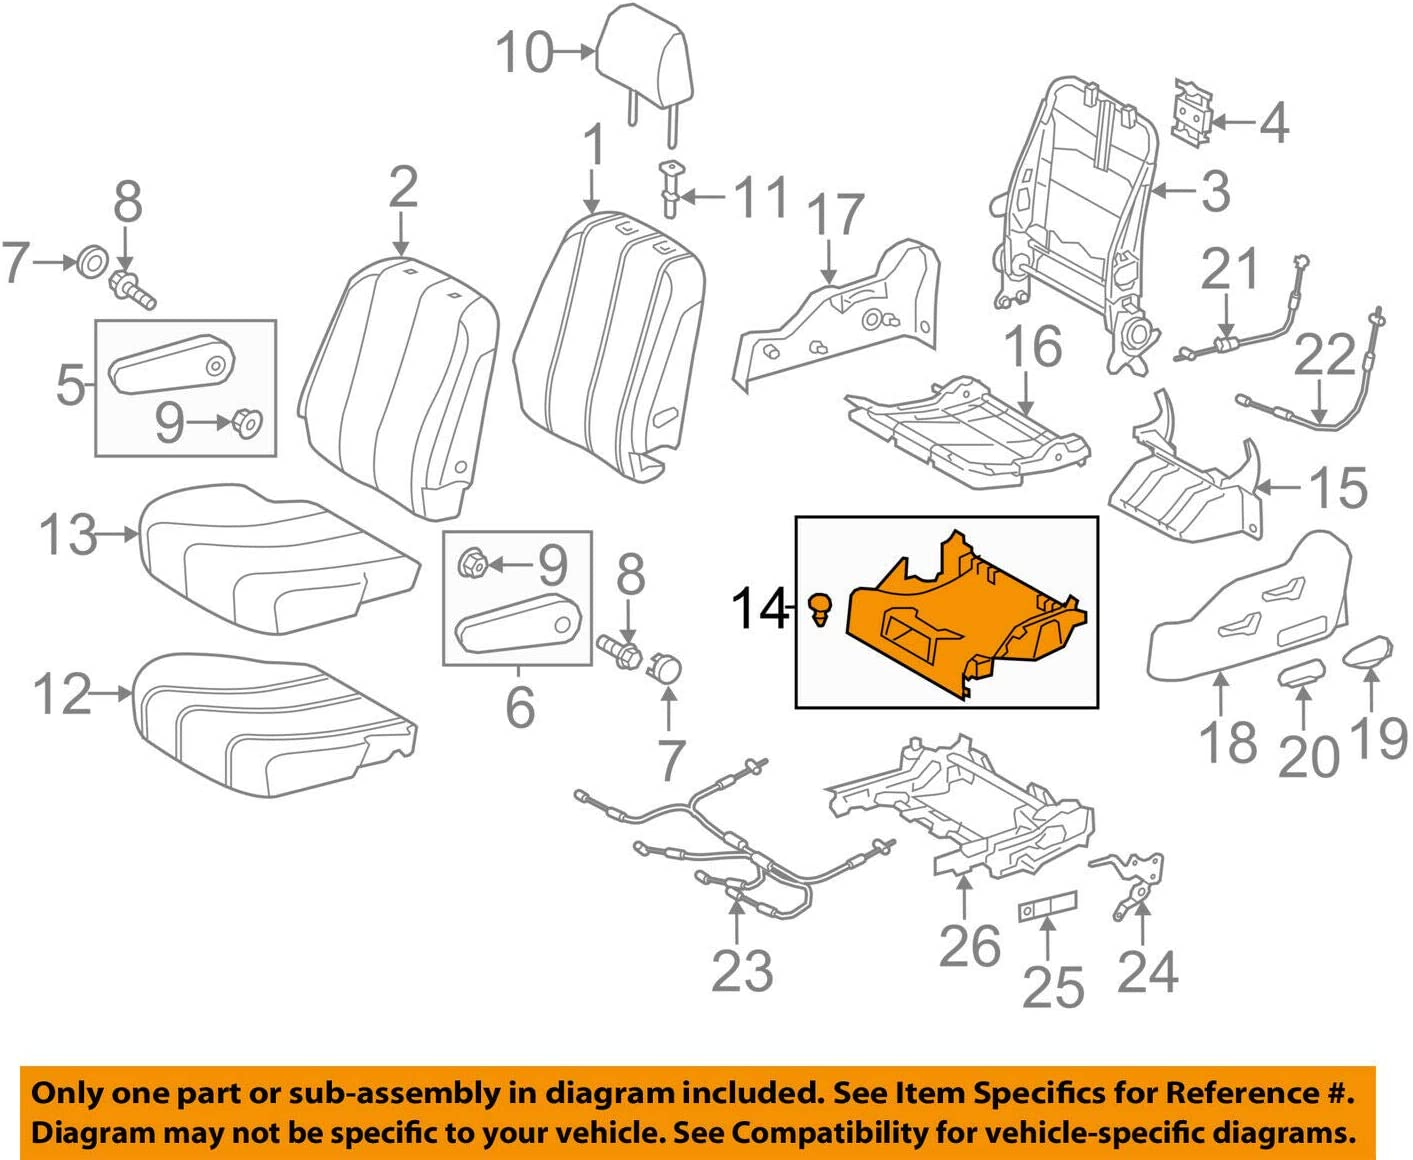 Super sale Special sale item TOYOTA 72908-08020-B0 Seat Cushion Sub Cover Under Assembly